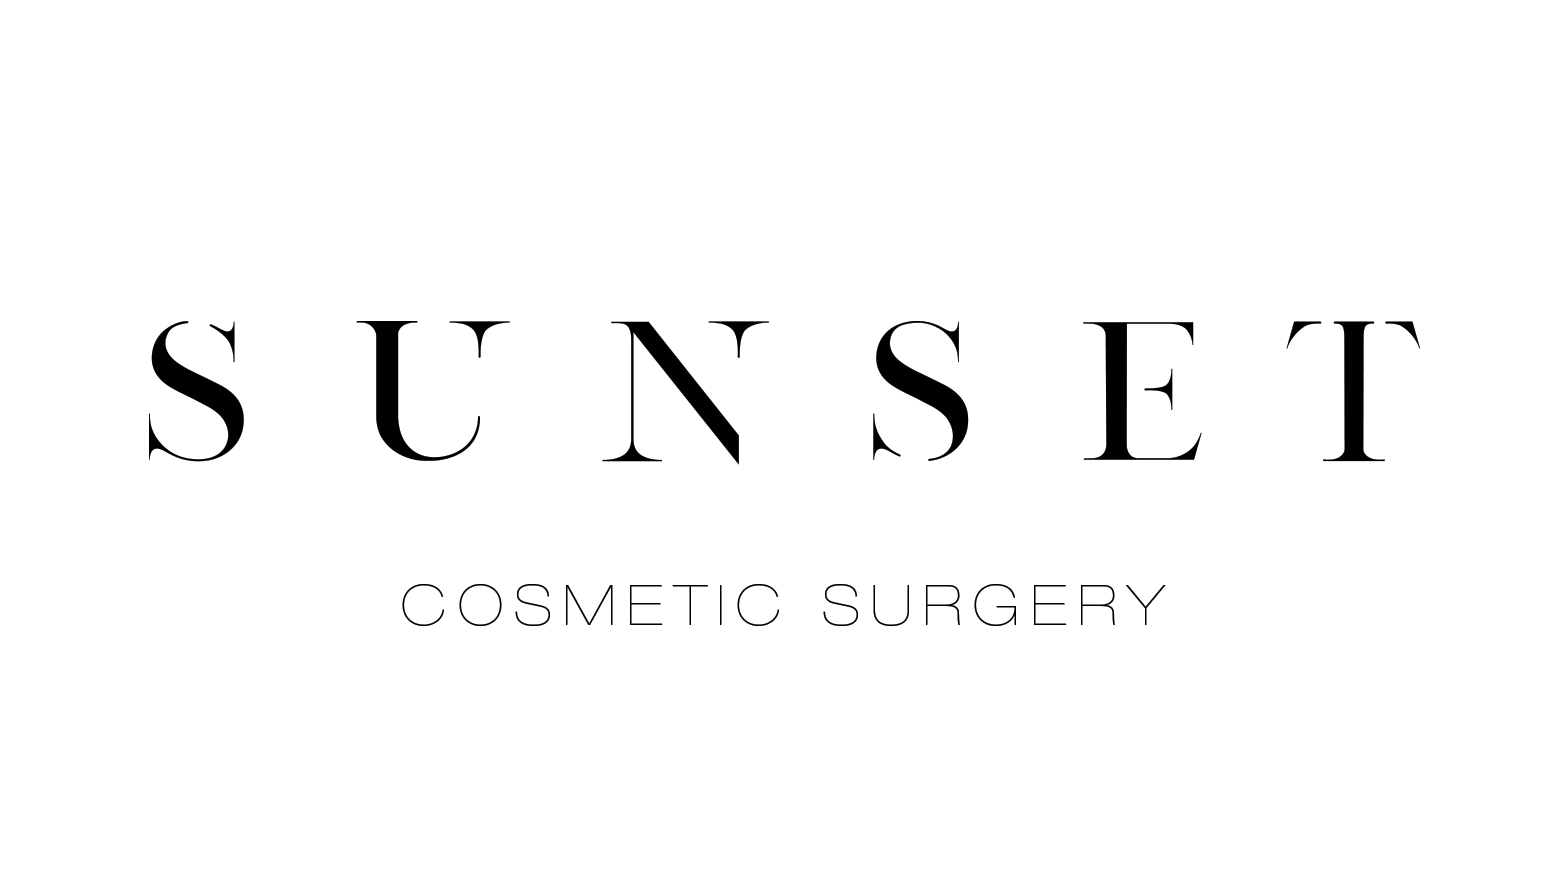 SUNSET Cosmetic Surgery LOGO Los Angeles